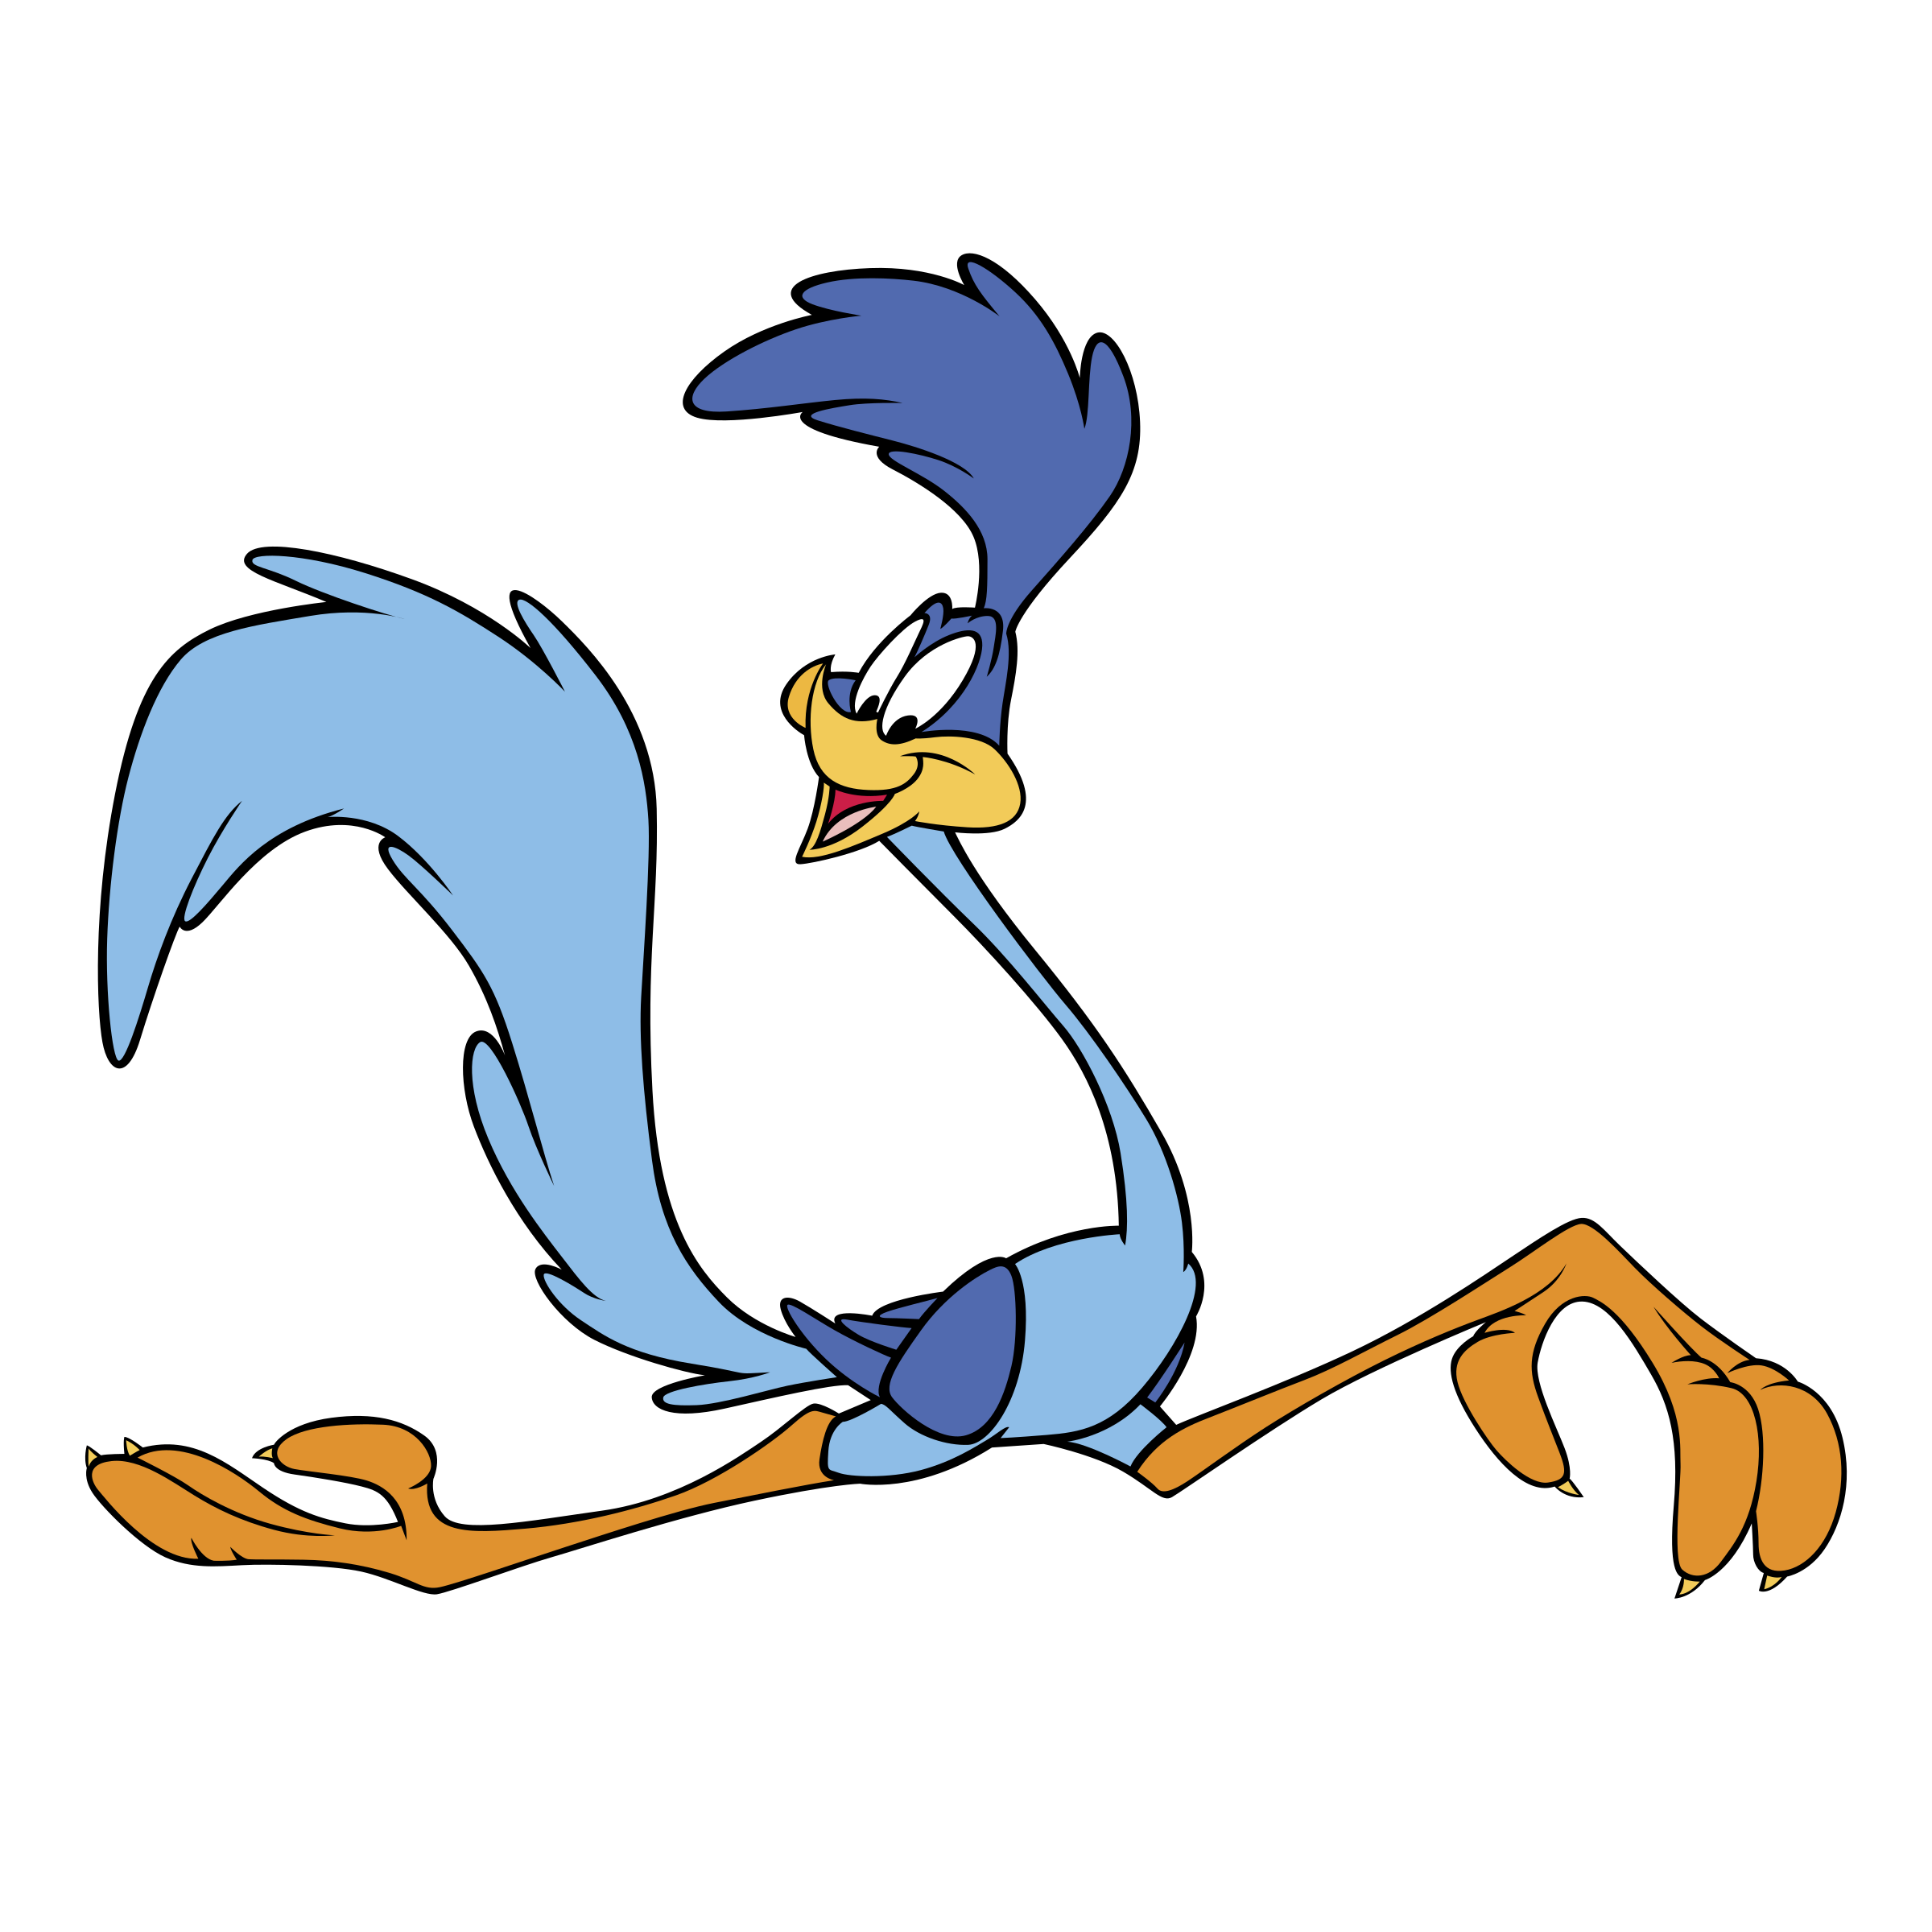 banner freeuse Roadrunner clipart. Transparent free on dumielauxepices.